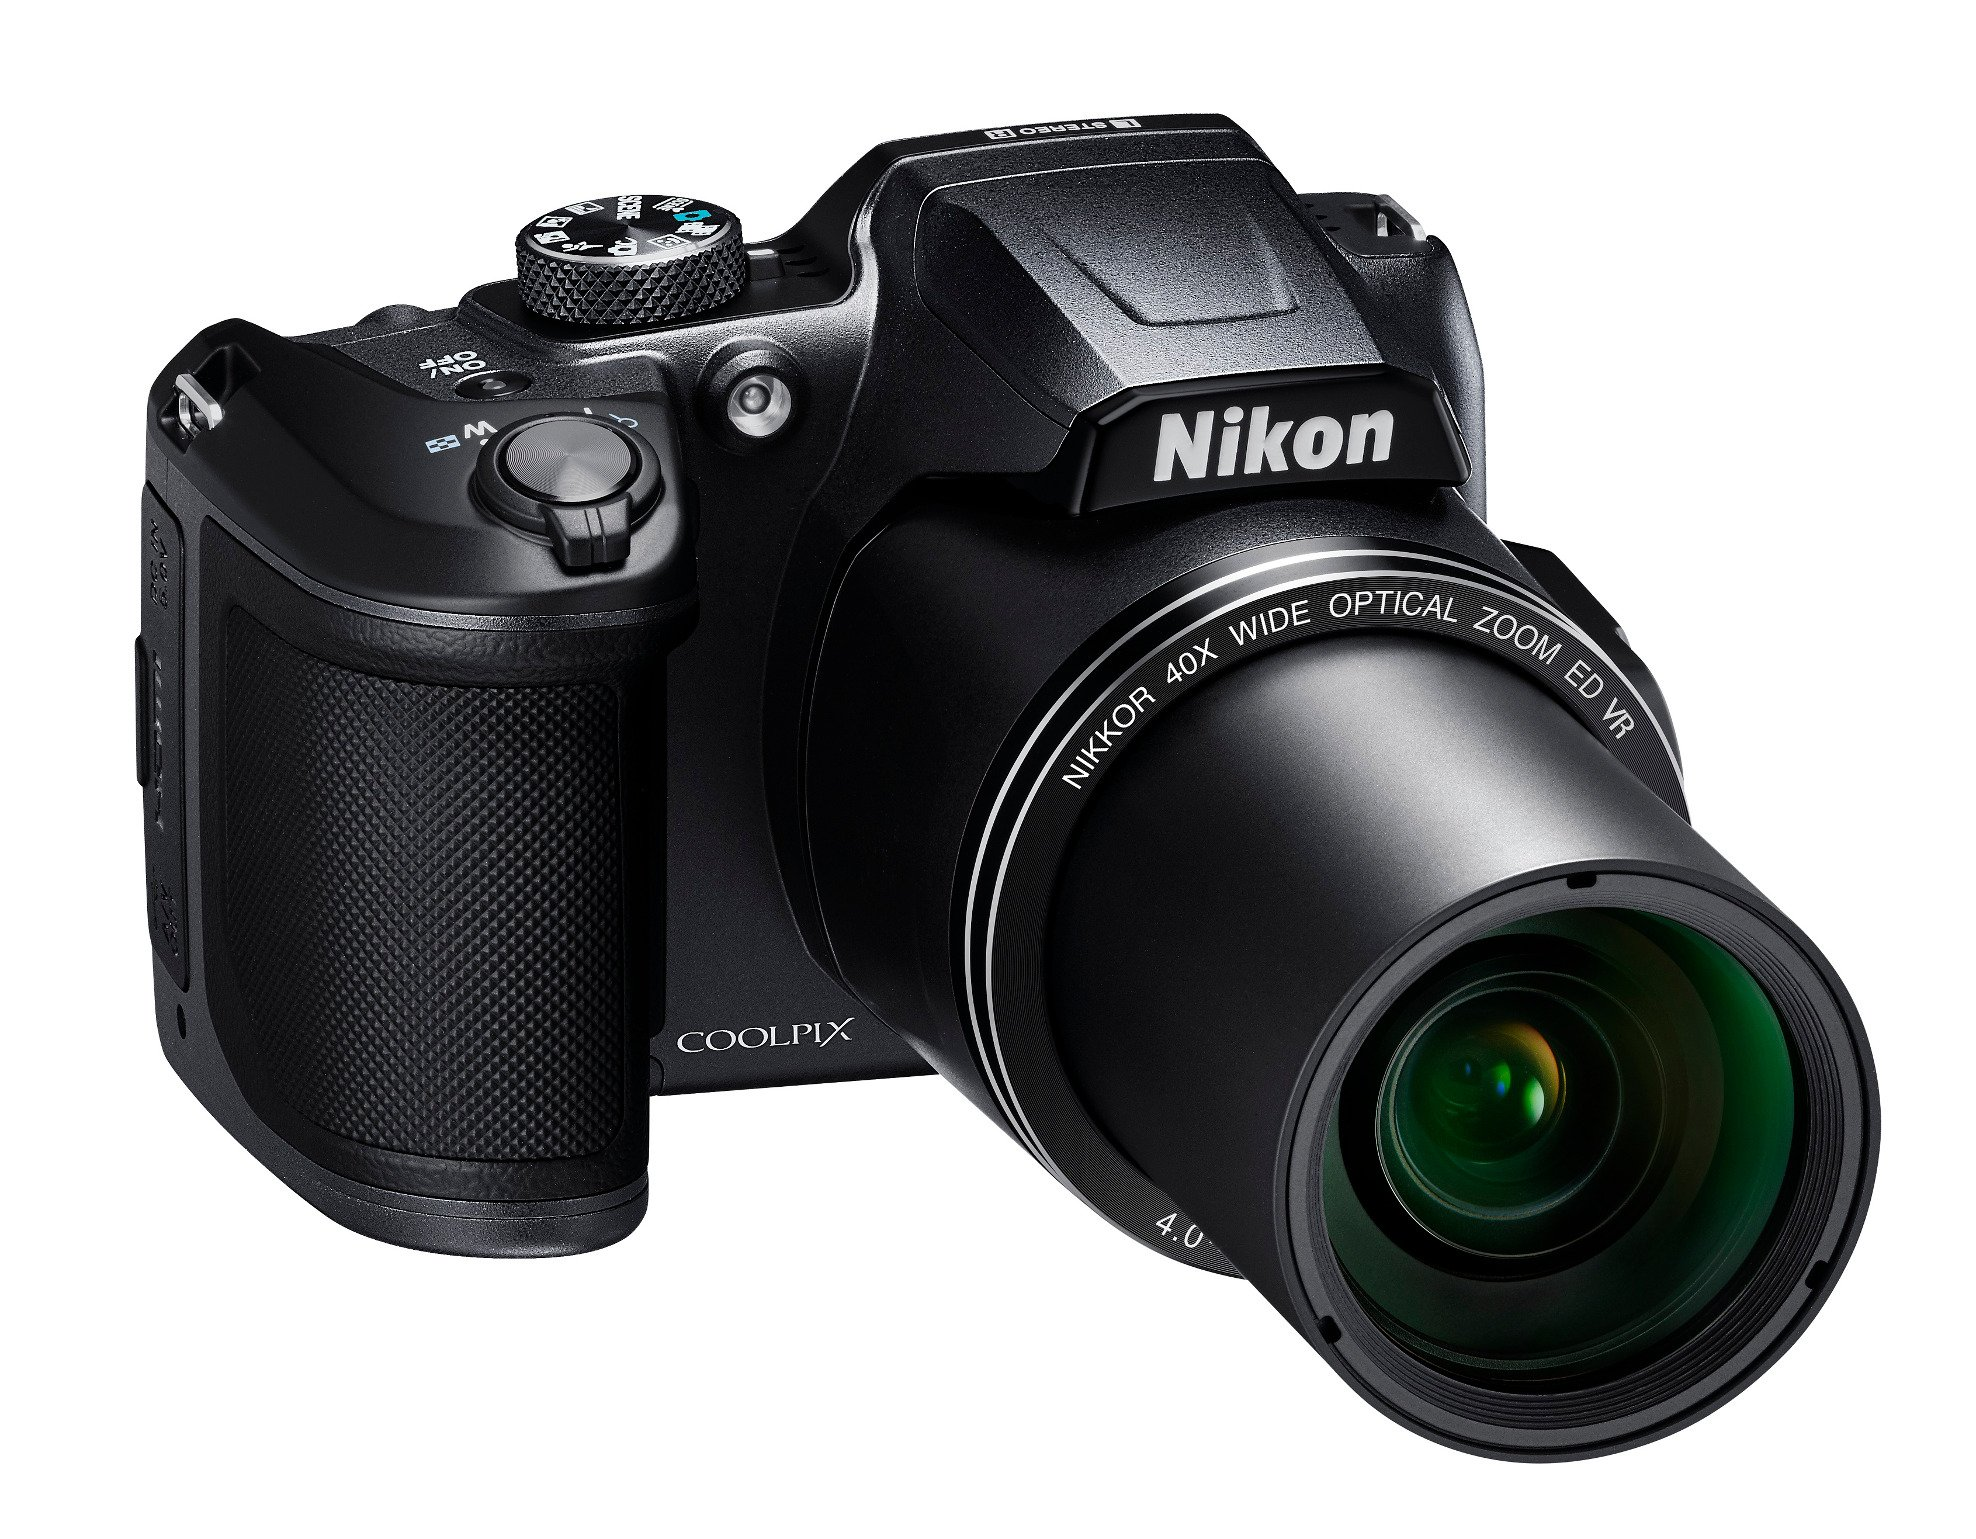 16MP Digital Camera with 40x Zoom in Black